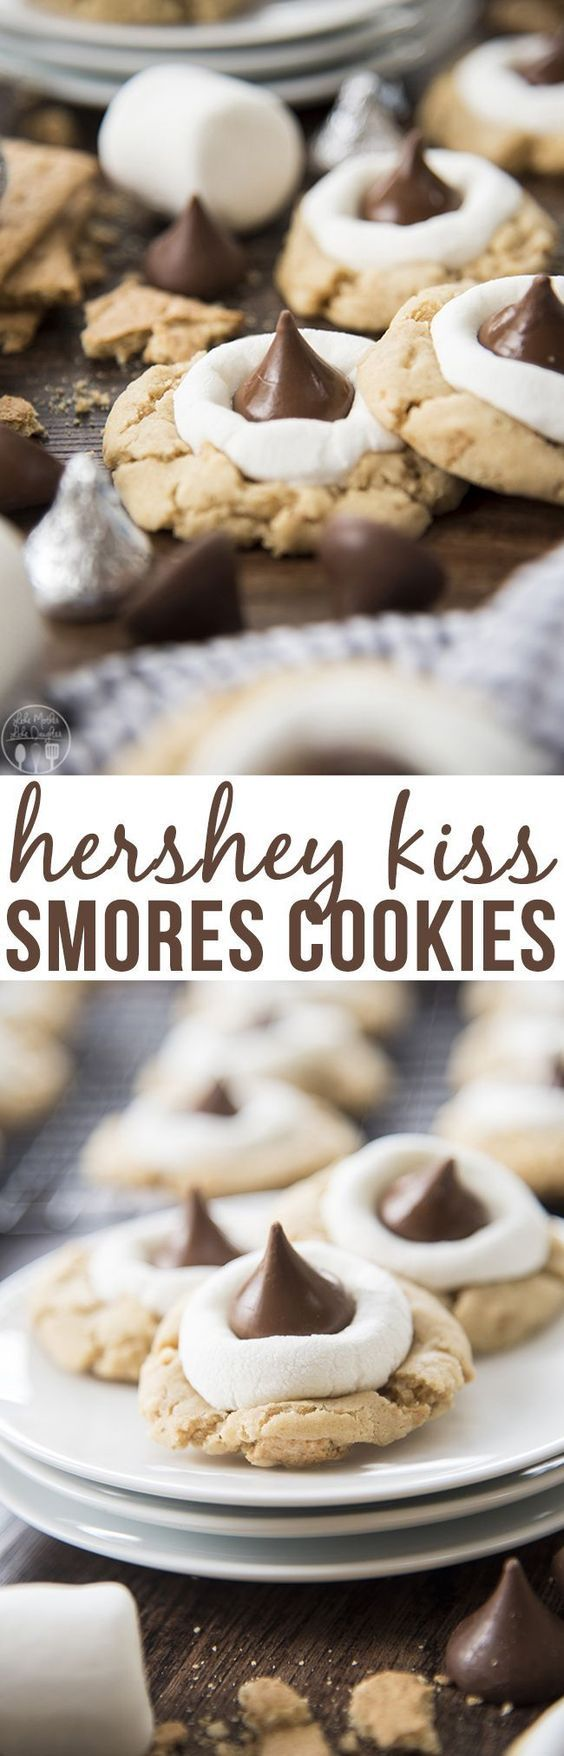 Hershey Kiss S'mores Cookies - These s'mores cookies start with a graham cracker filled cookie base, topped with a gooey marshmallow, and a chocolate kiss - for your…